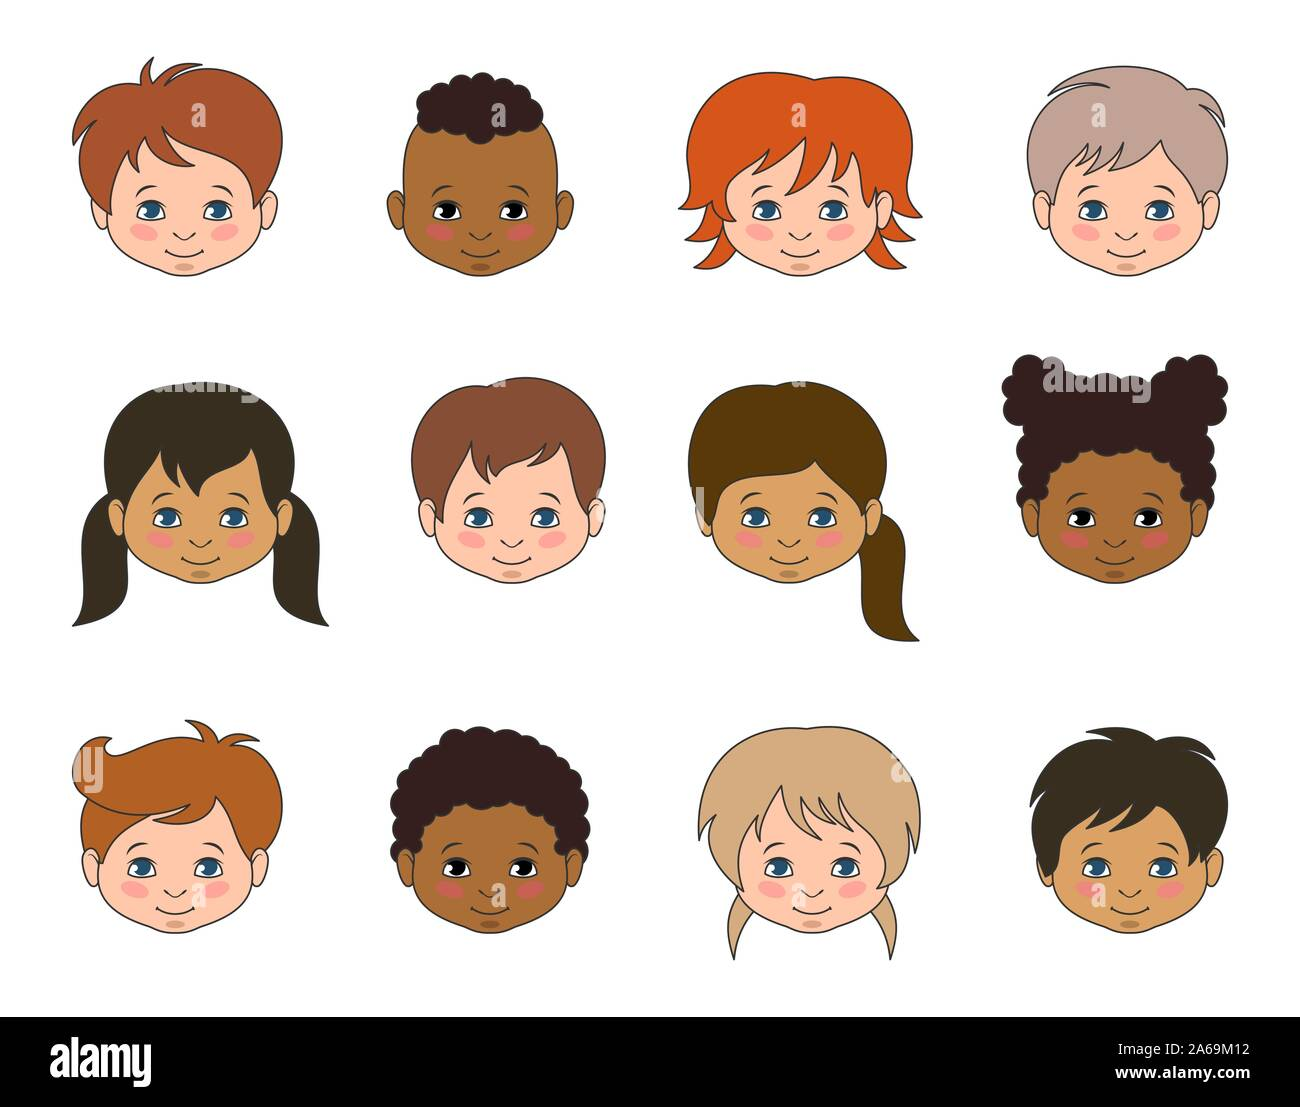 Set Children Faces of Different Races, Multicultural Kids Heads - Illustration Vector Stock Vector